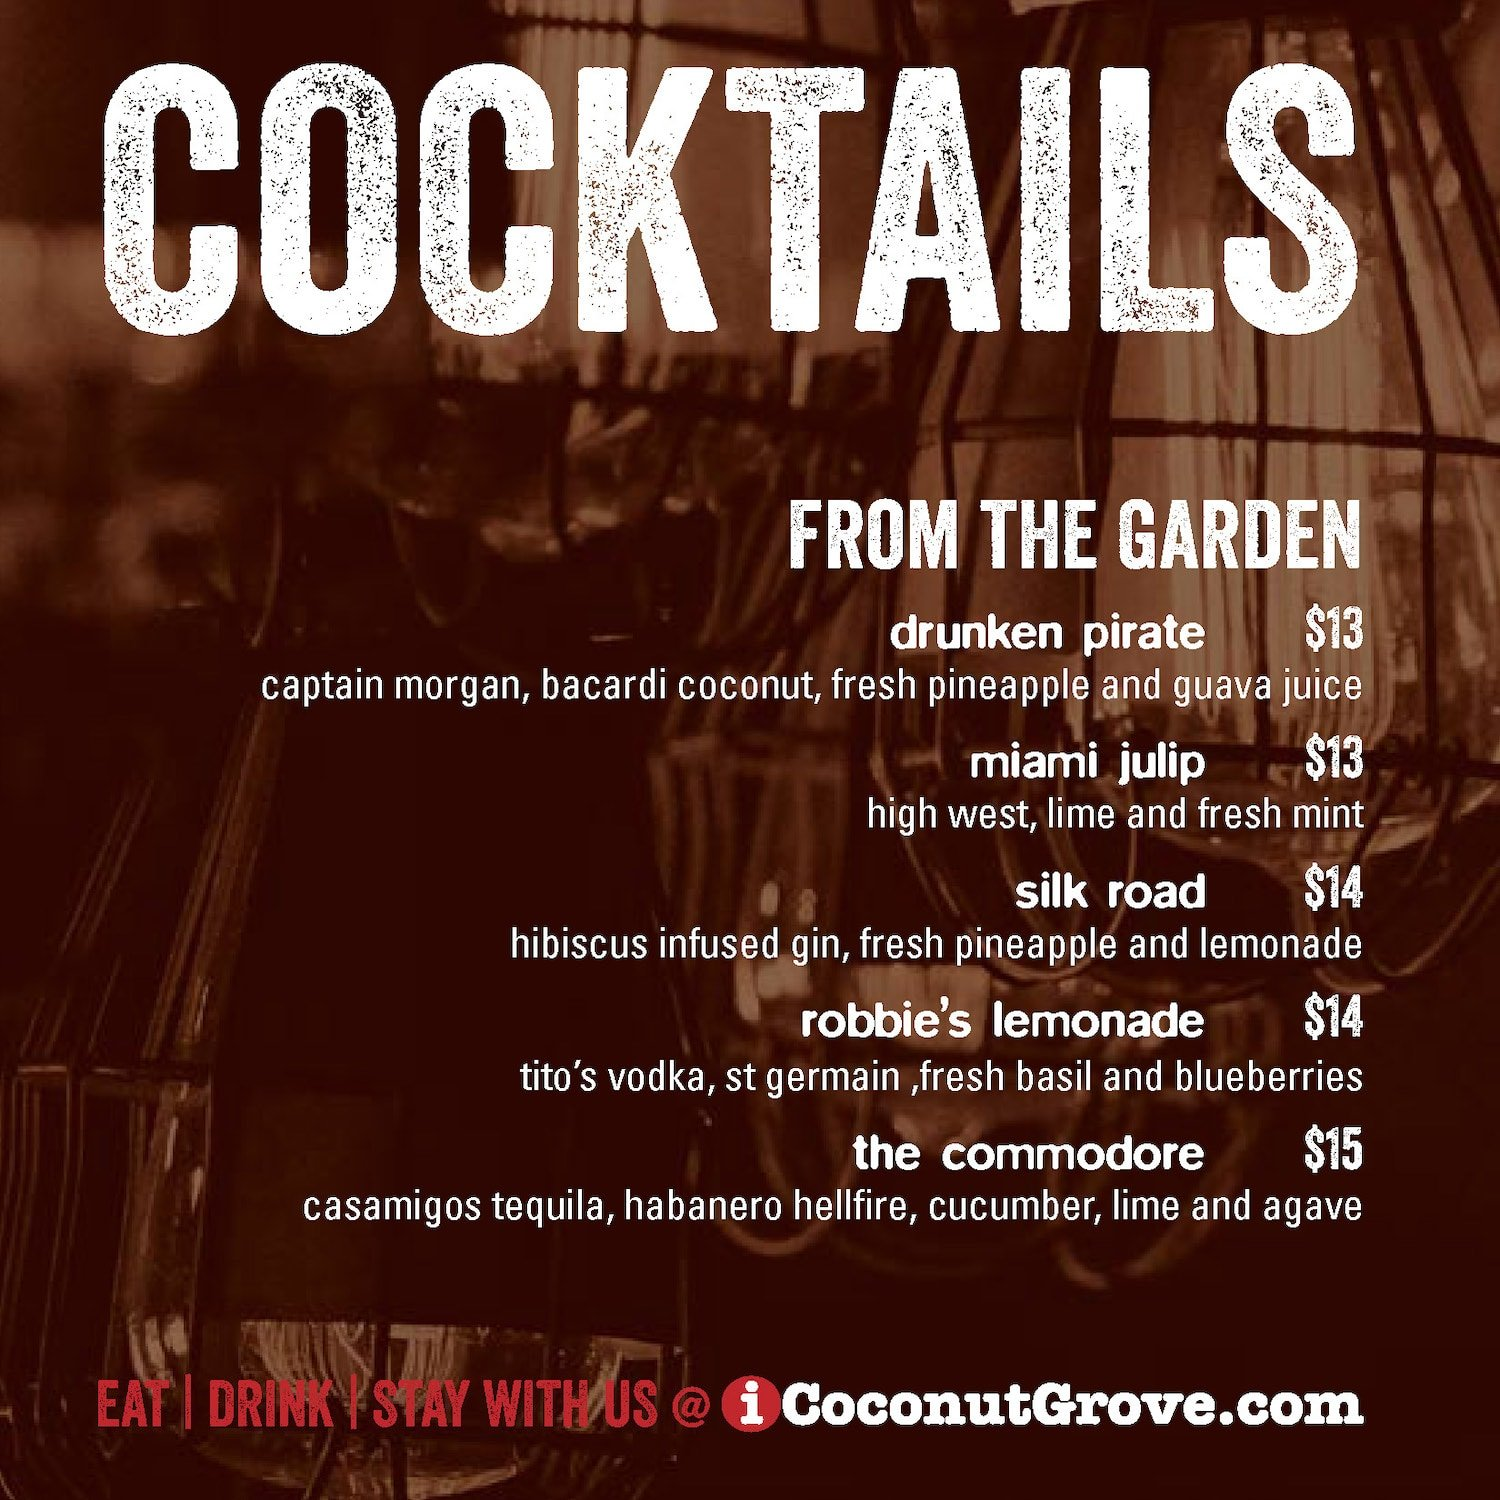 CocktailMenu 070919 copy Page 04